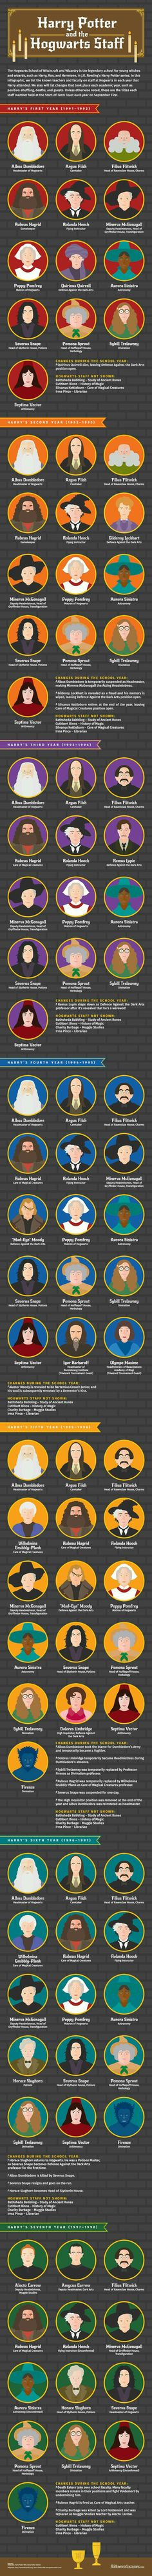 hogwarts staff year 1-7